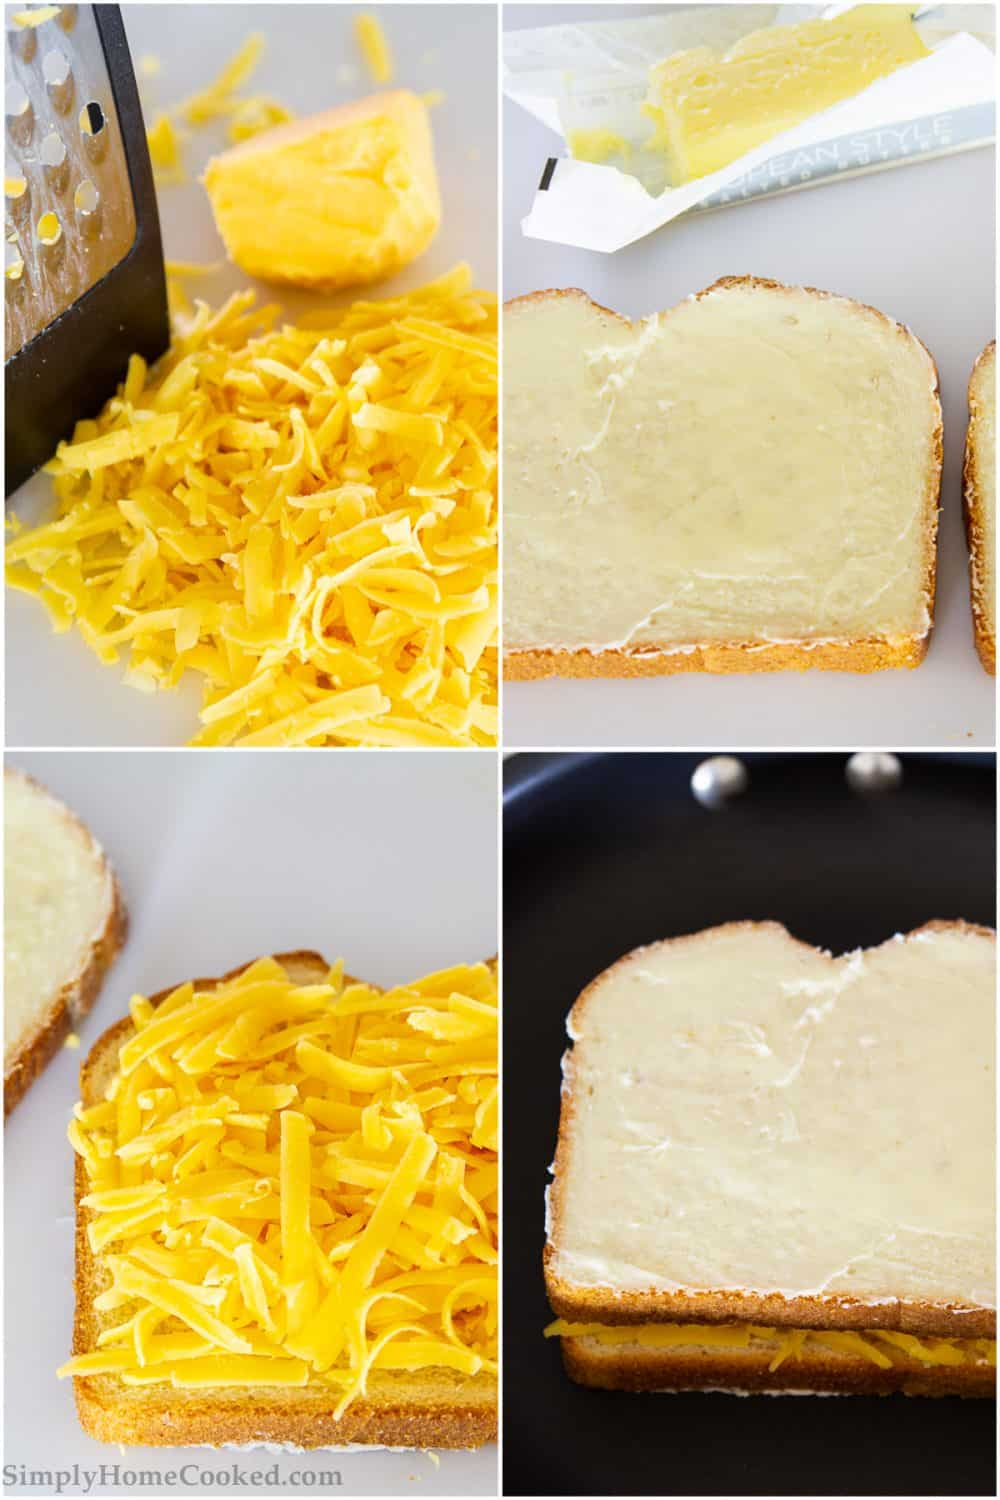 Step by step photo collage of how to make a grilled cheese sandwich